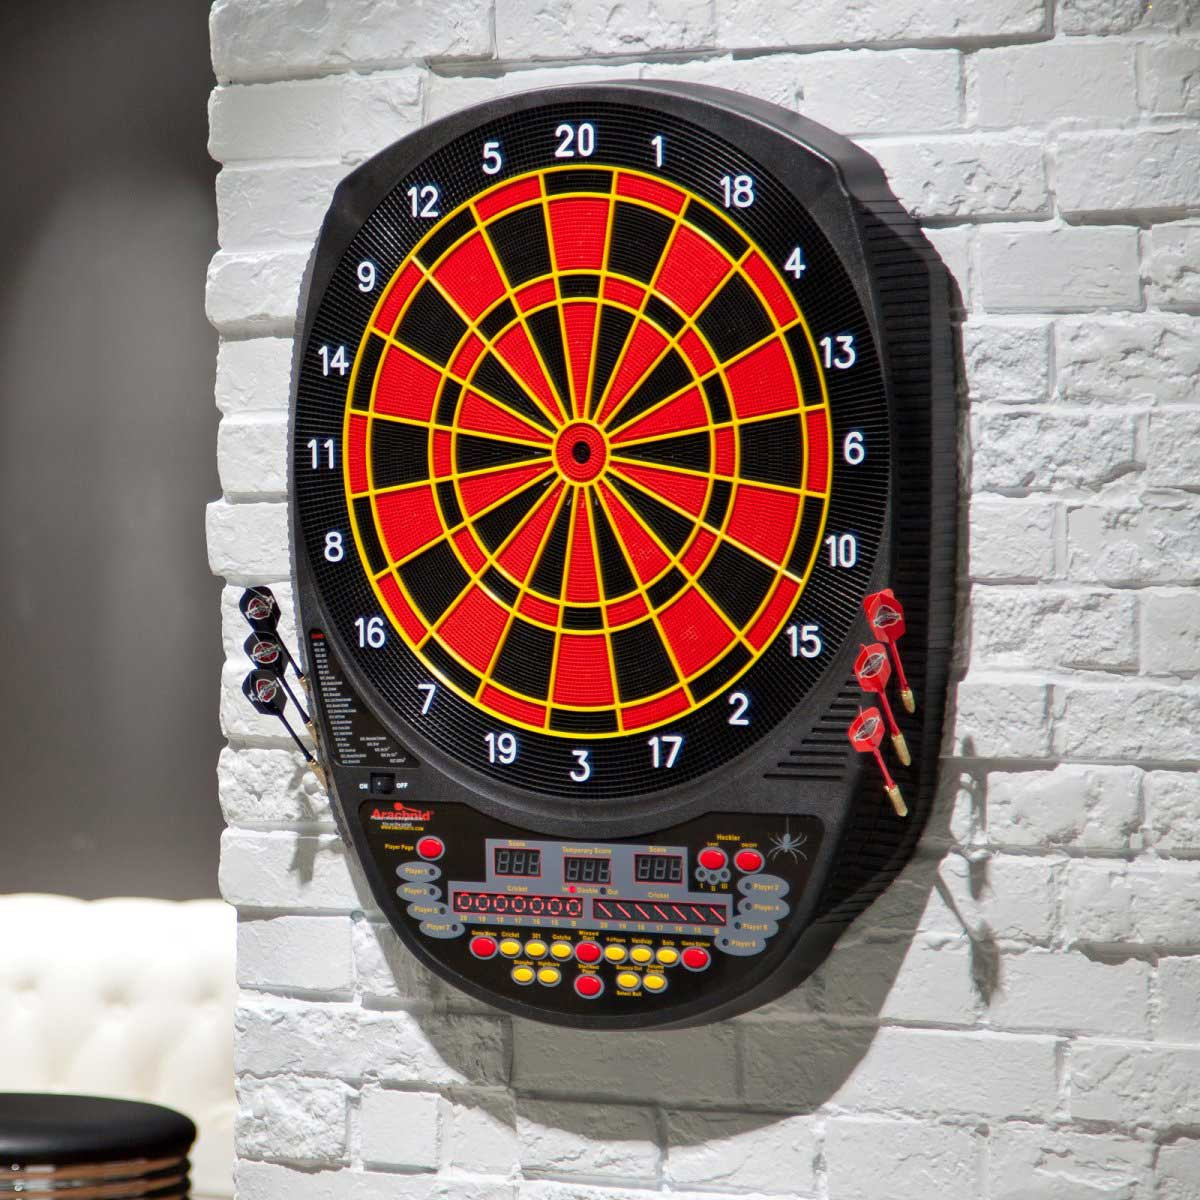 Arachnid model 655 ara electronic dart board | #291311909.